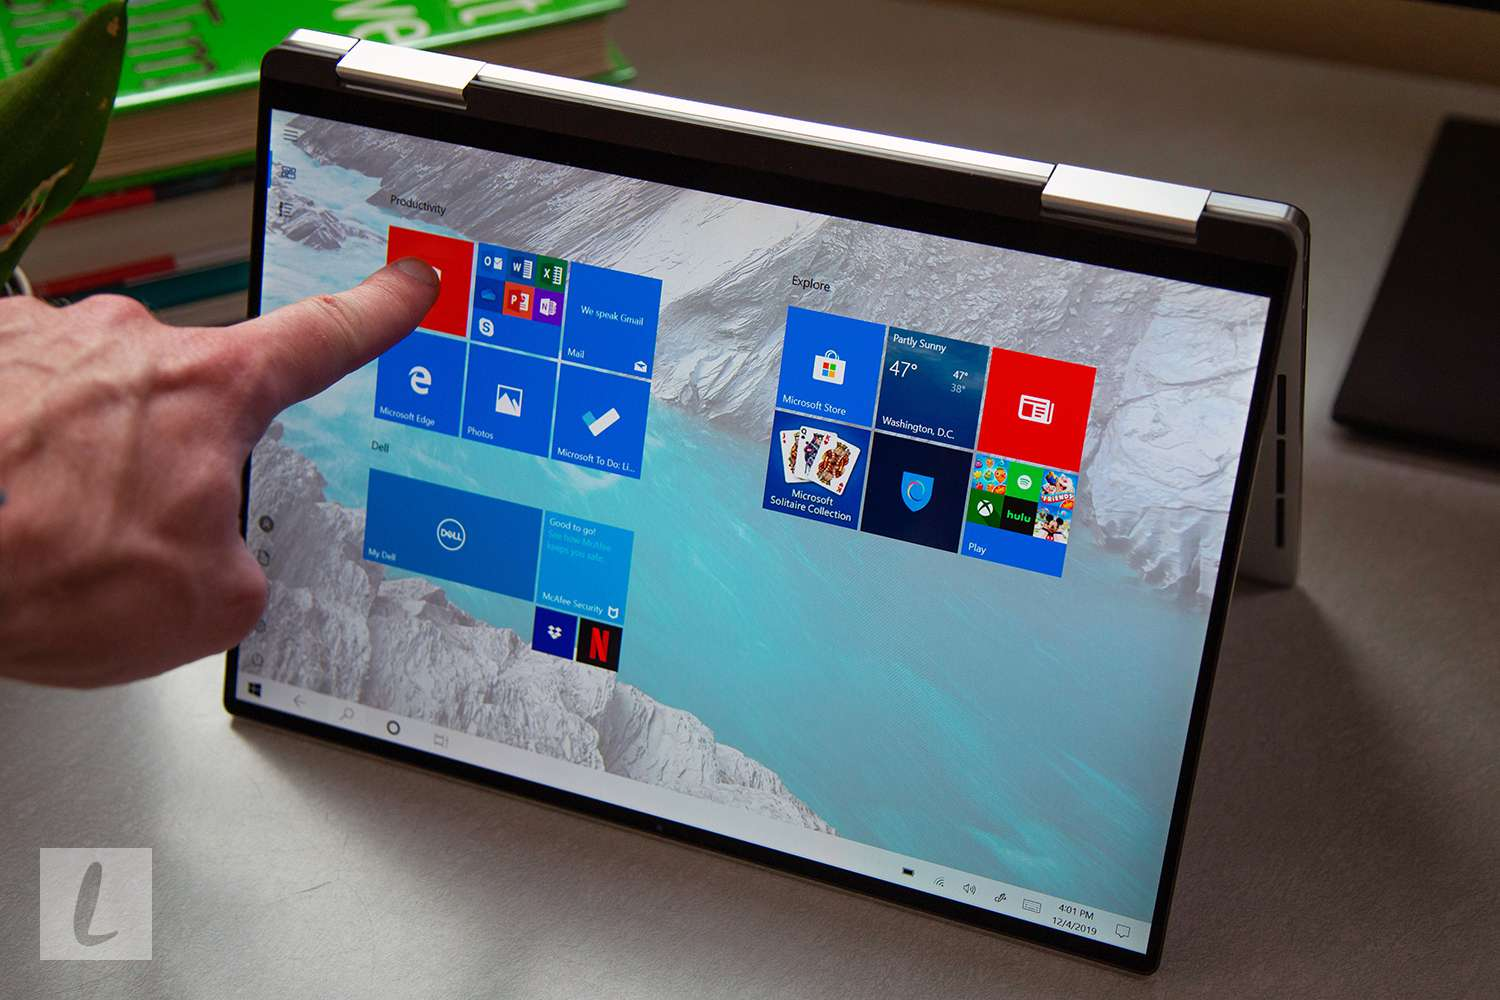 Dell XPS 13 2-in-1 Laptop